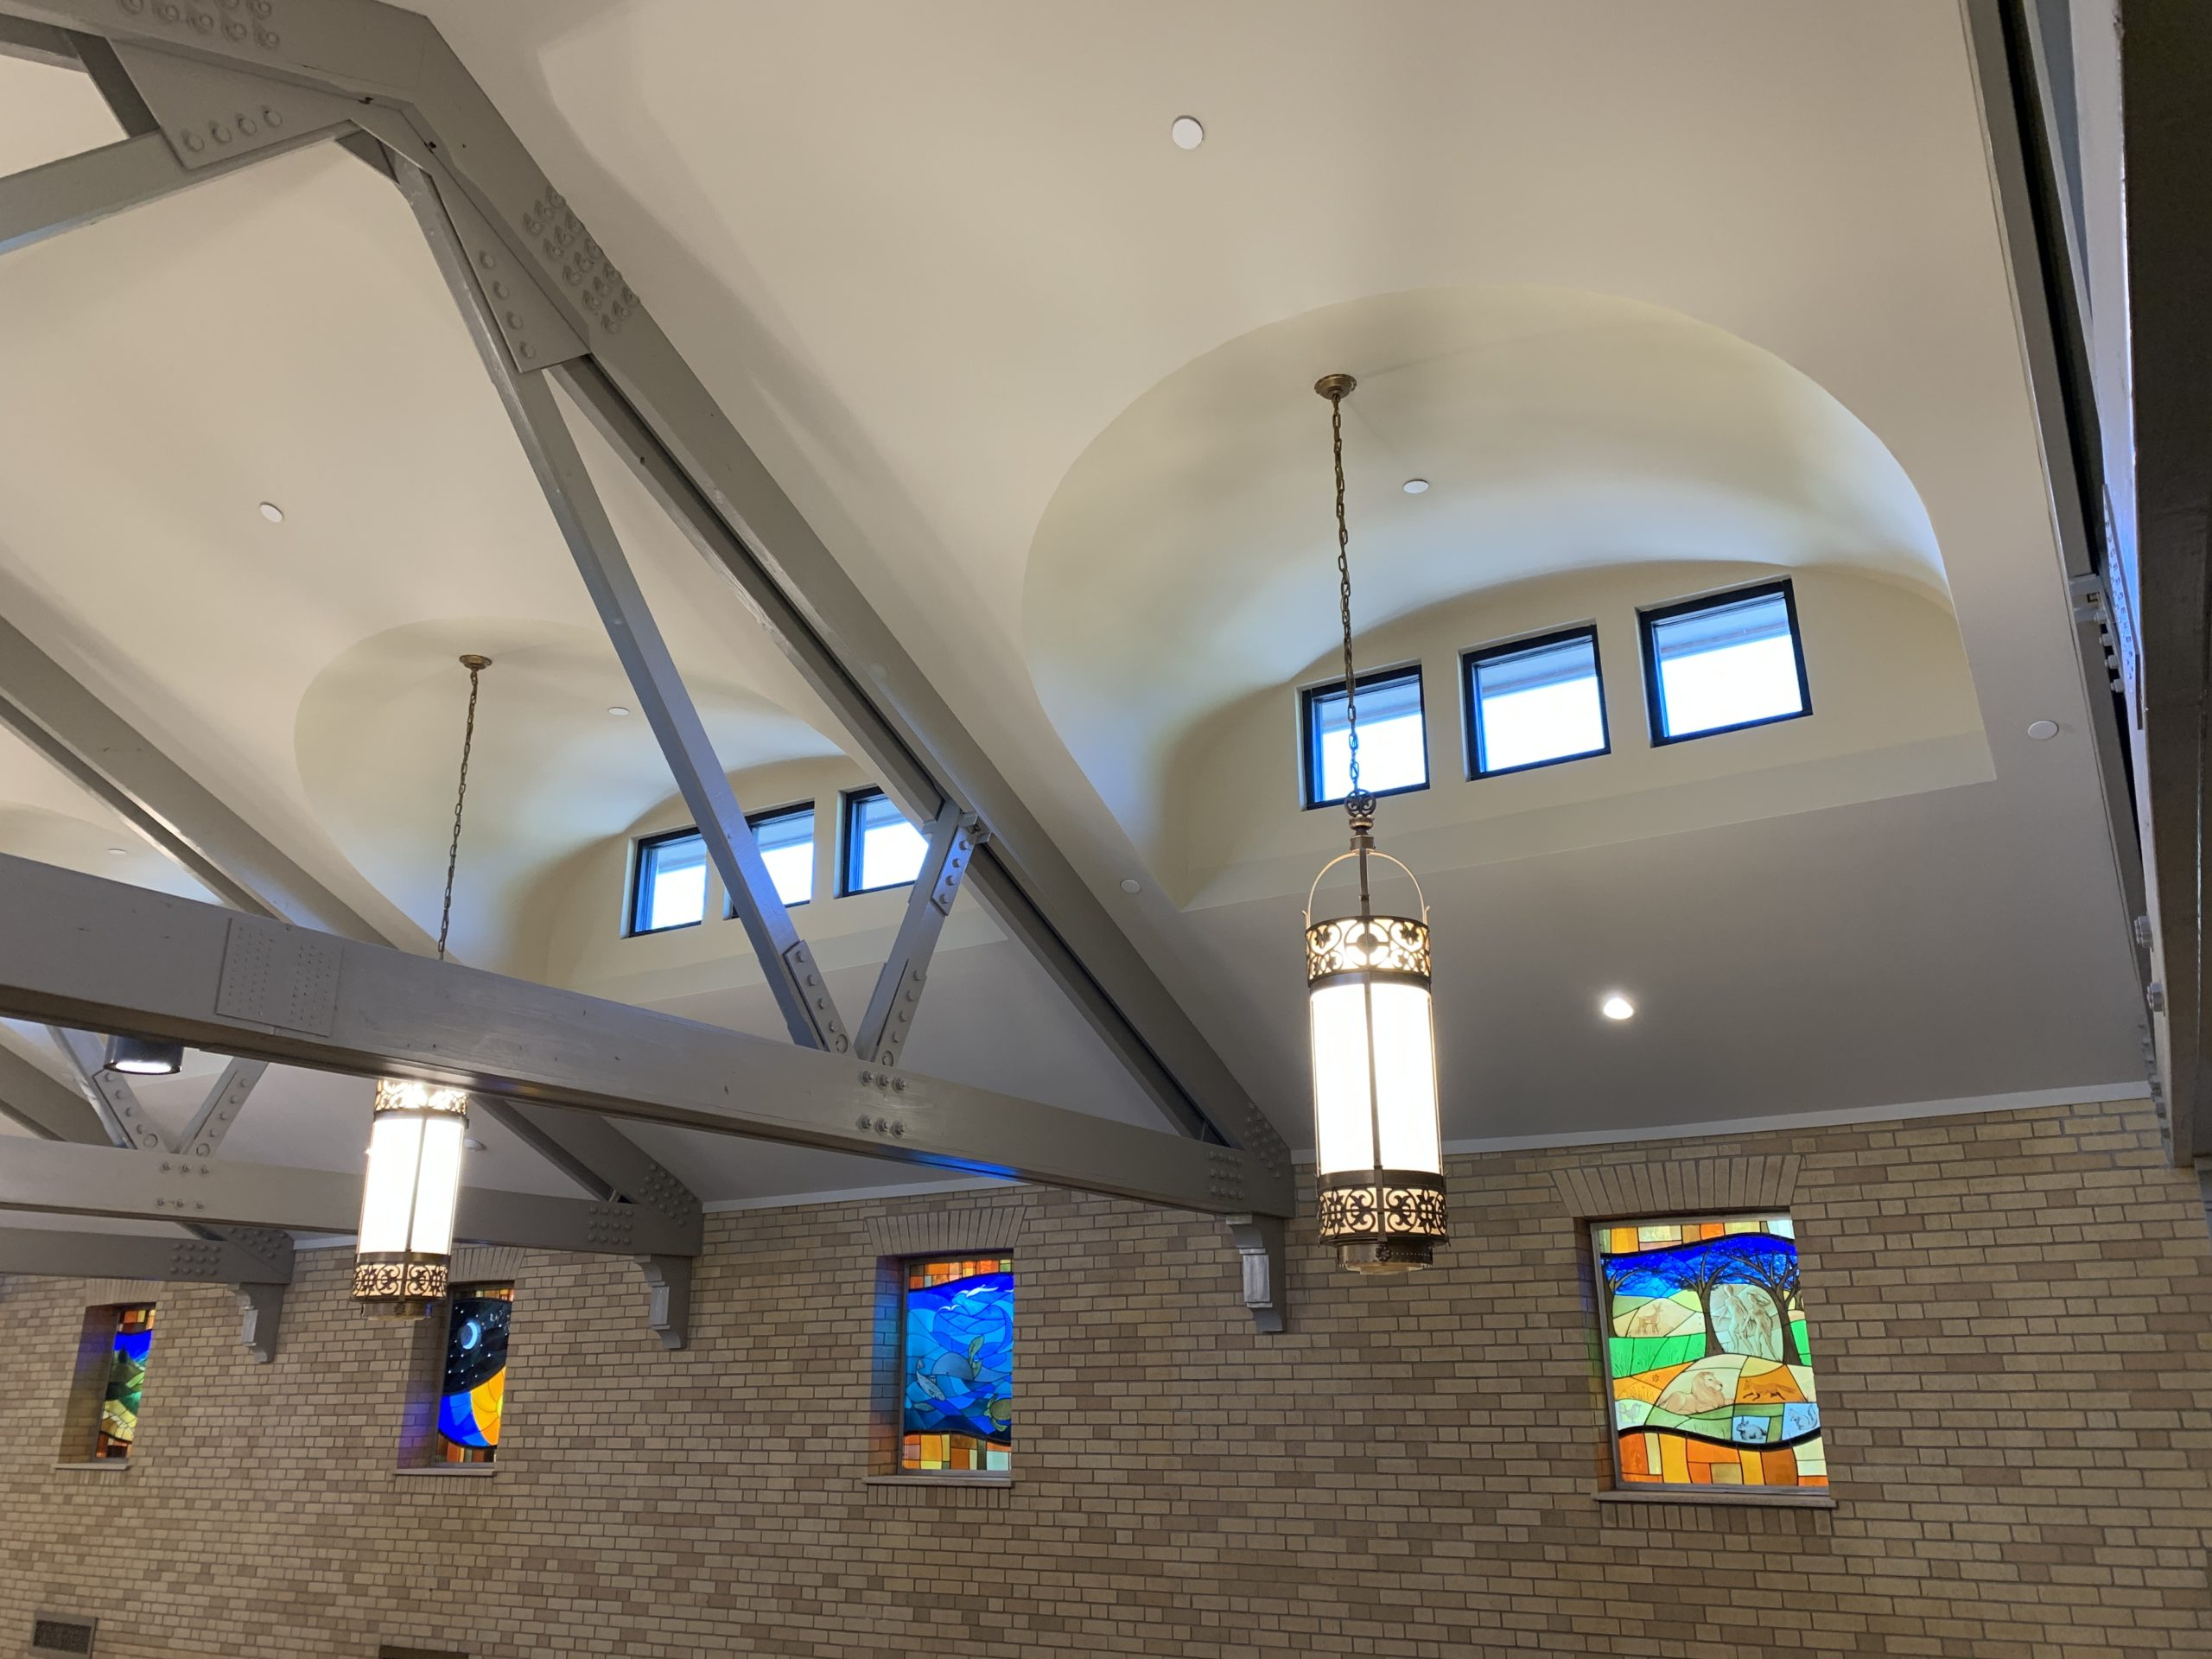 South Valley Drywall Our Lady of Lourdes Catholic Church clerestory windows